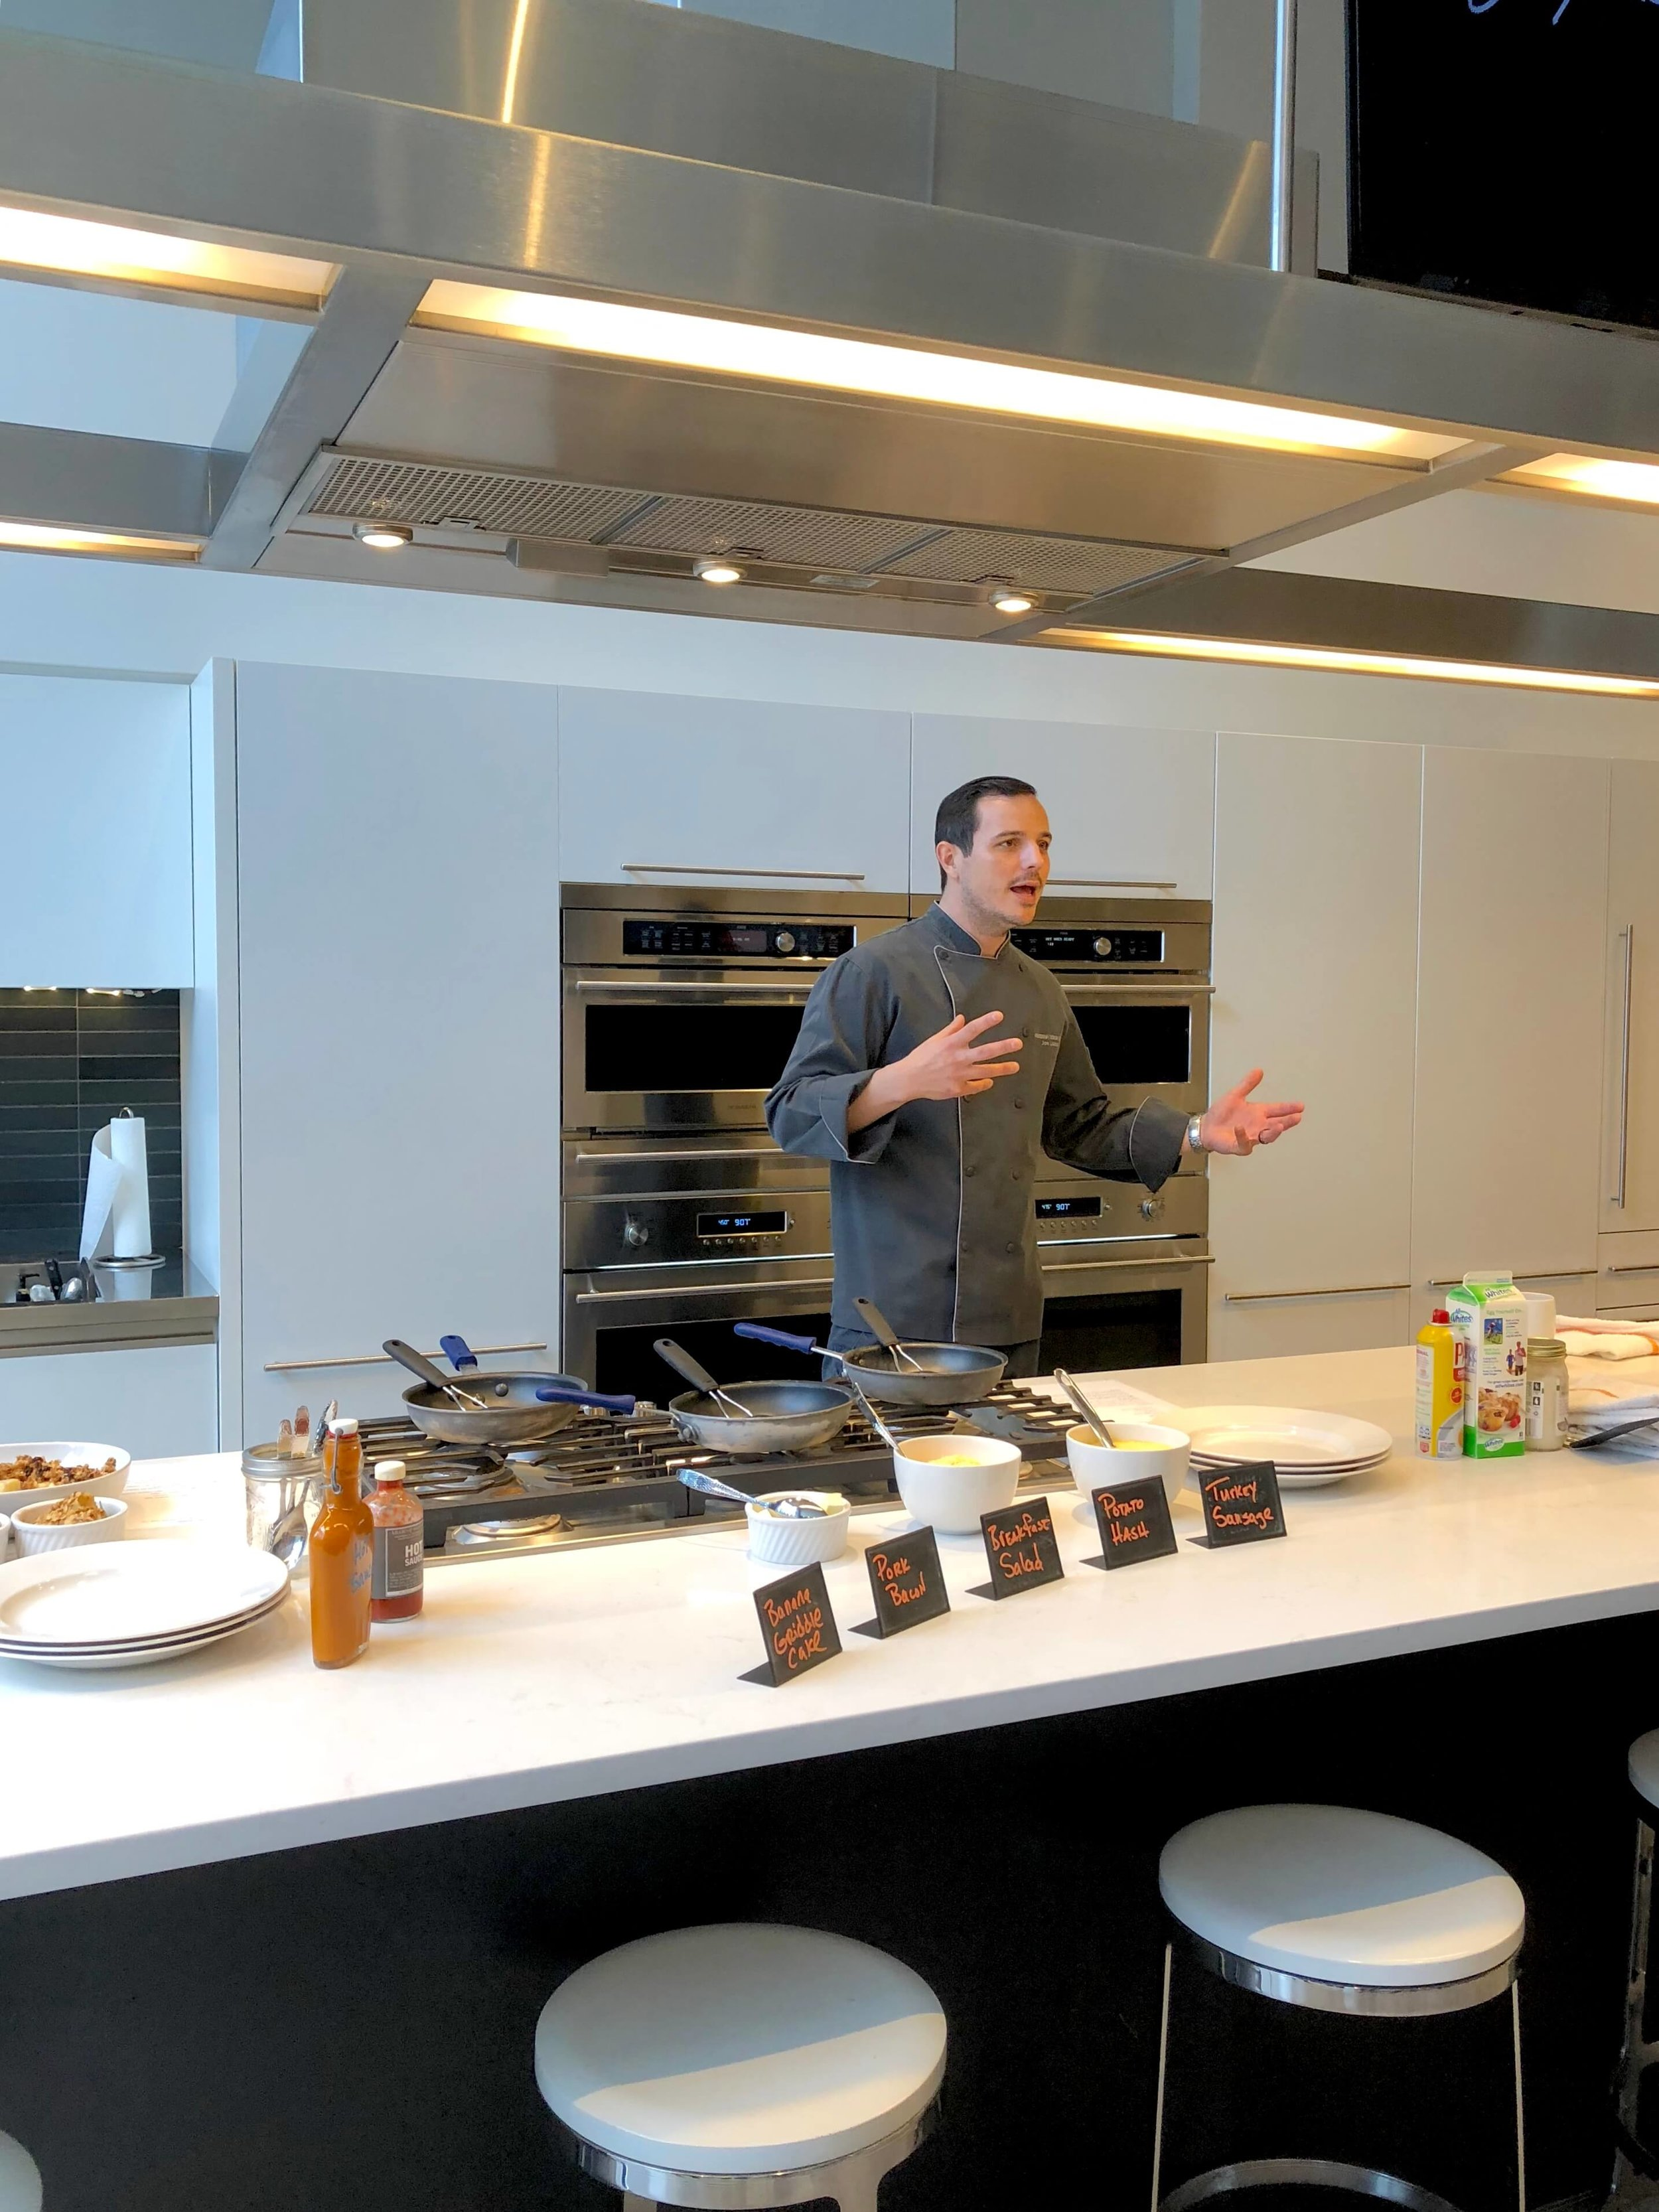 Cooking with a chef at Monogram Appliances showroom